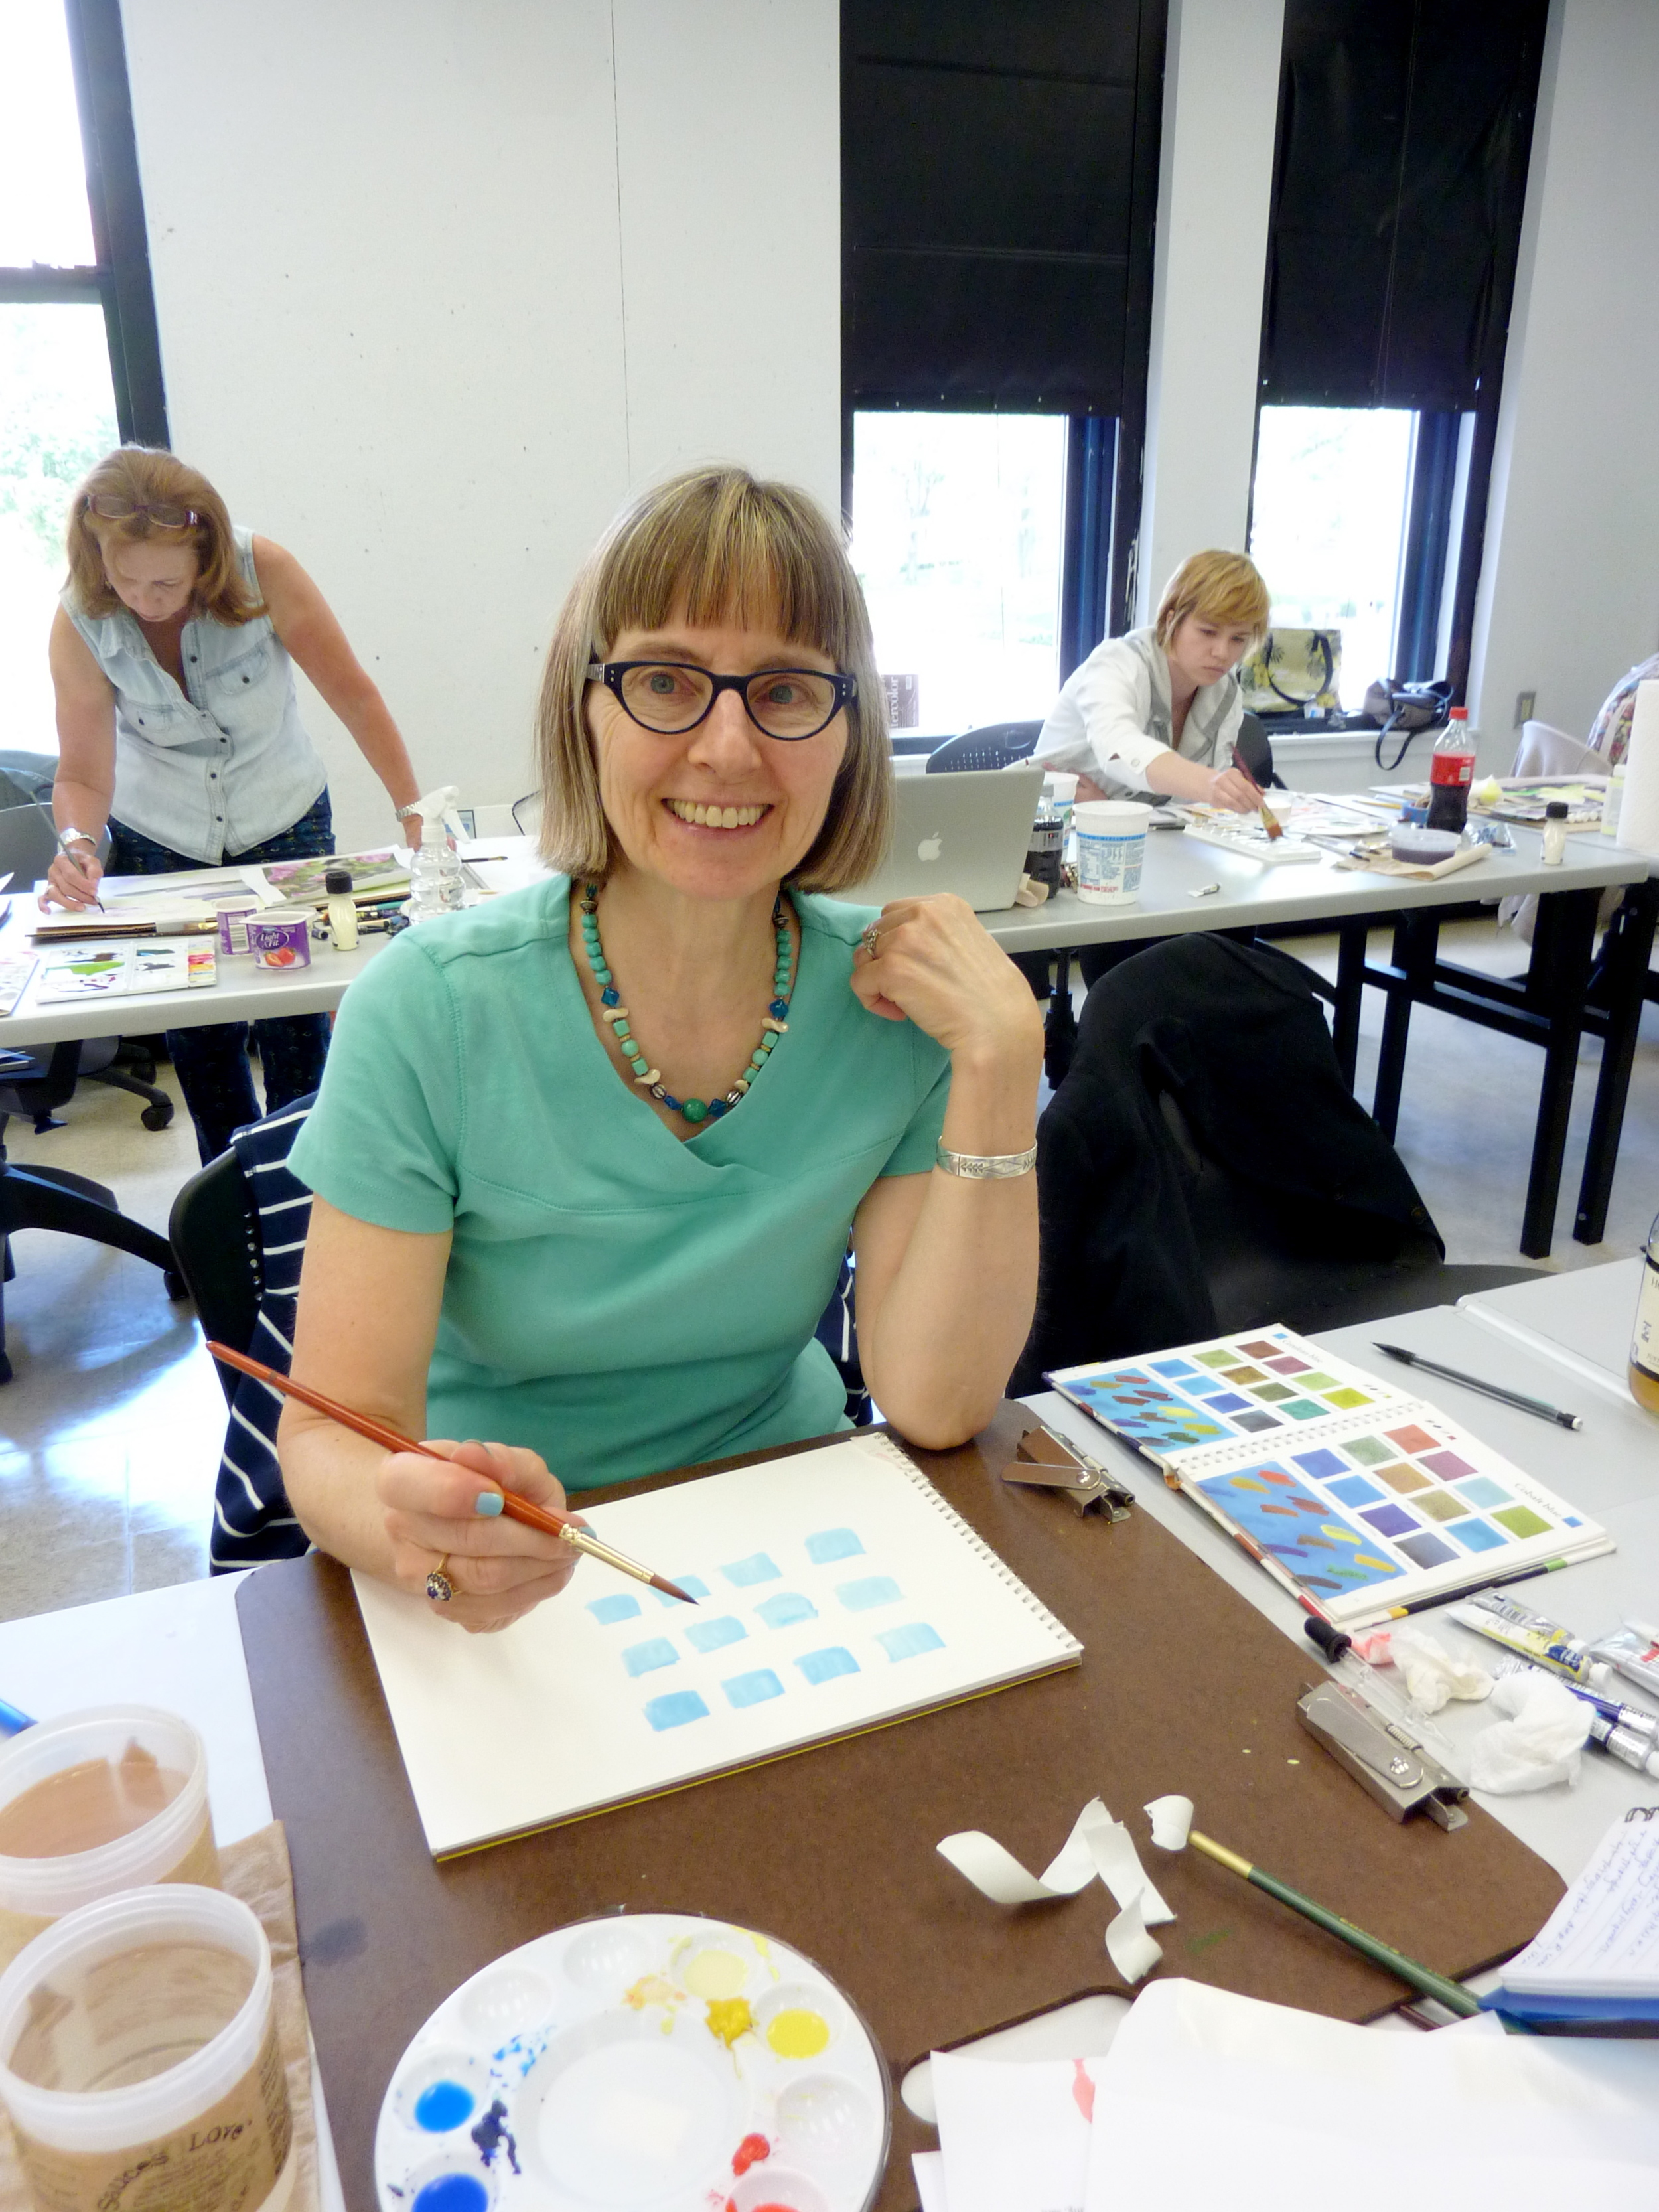 Jane expanded her color knowledge by working on color swatches.